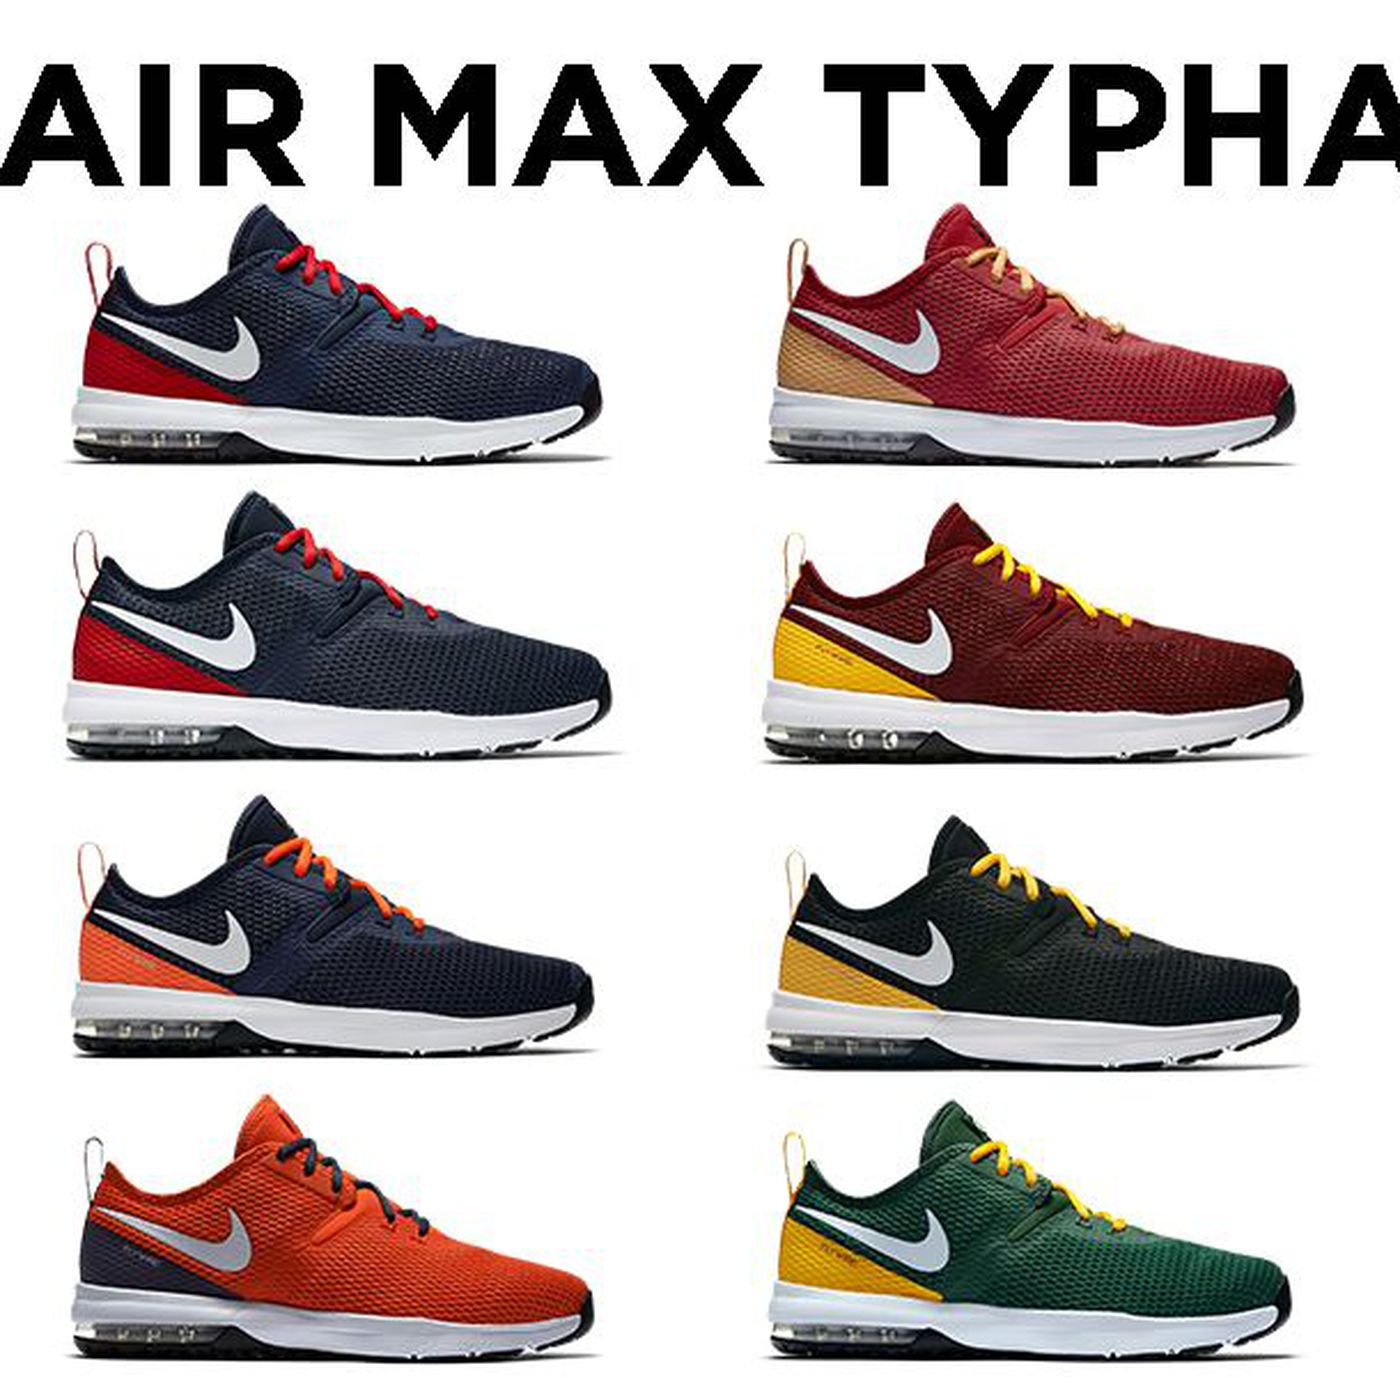 Nike releases new NFL-themed Air Max Typha 2 shoe collection ... 625842172b